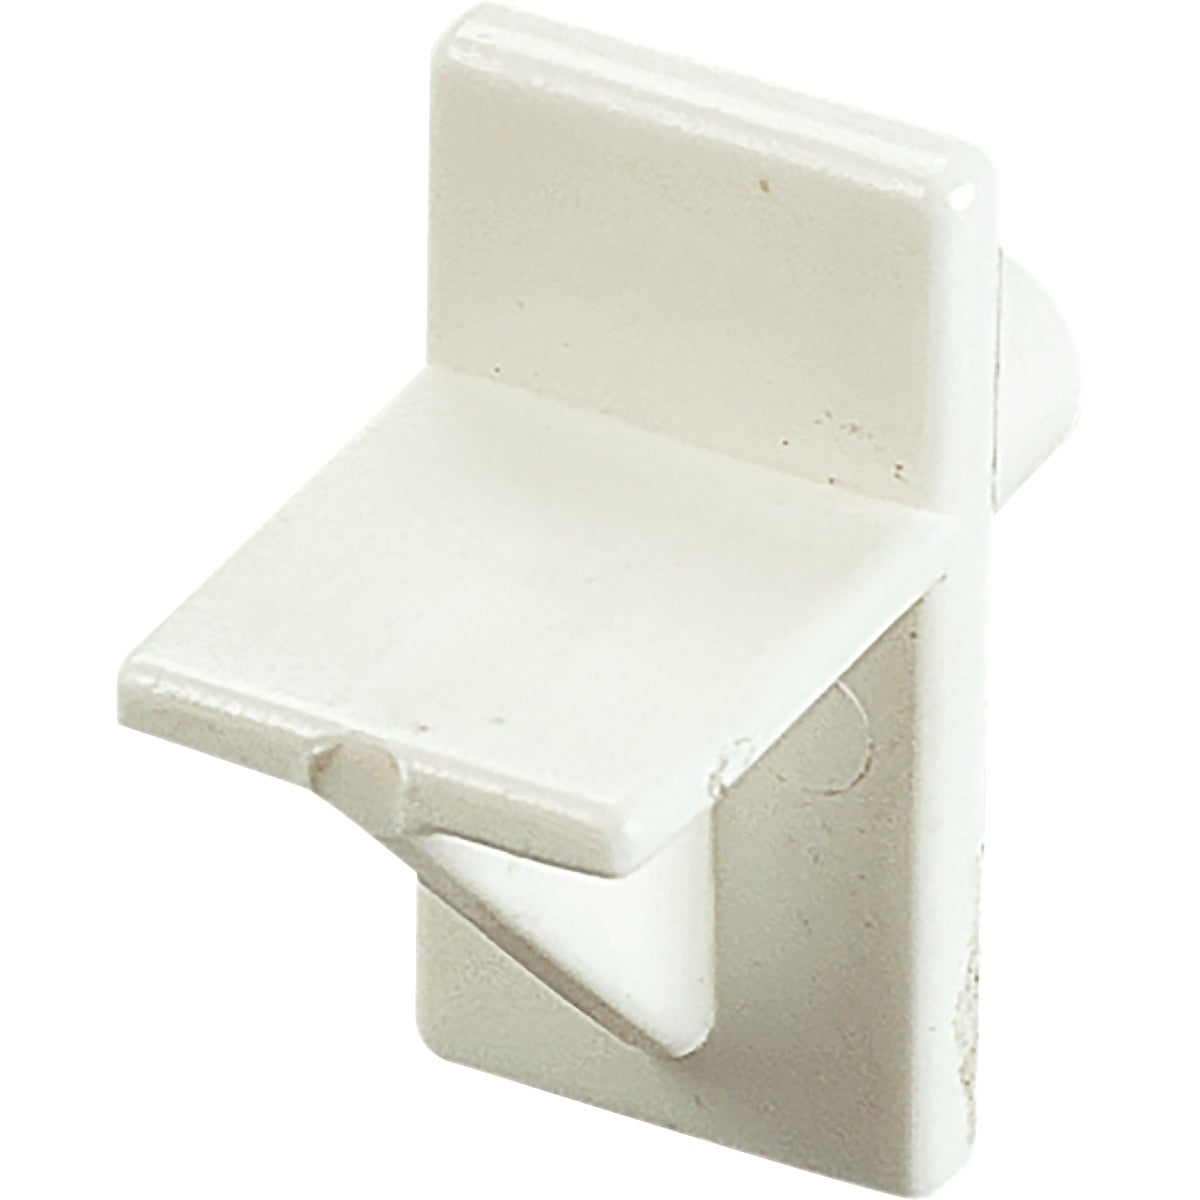 PLASTIC SHELF SUPPORT